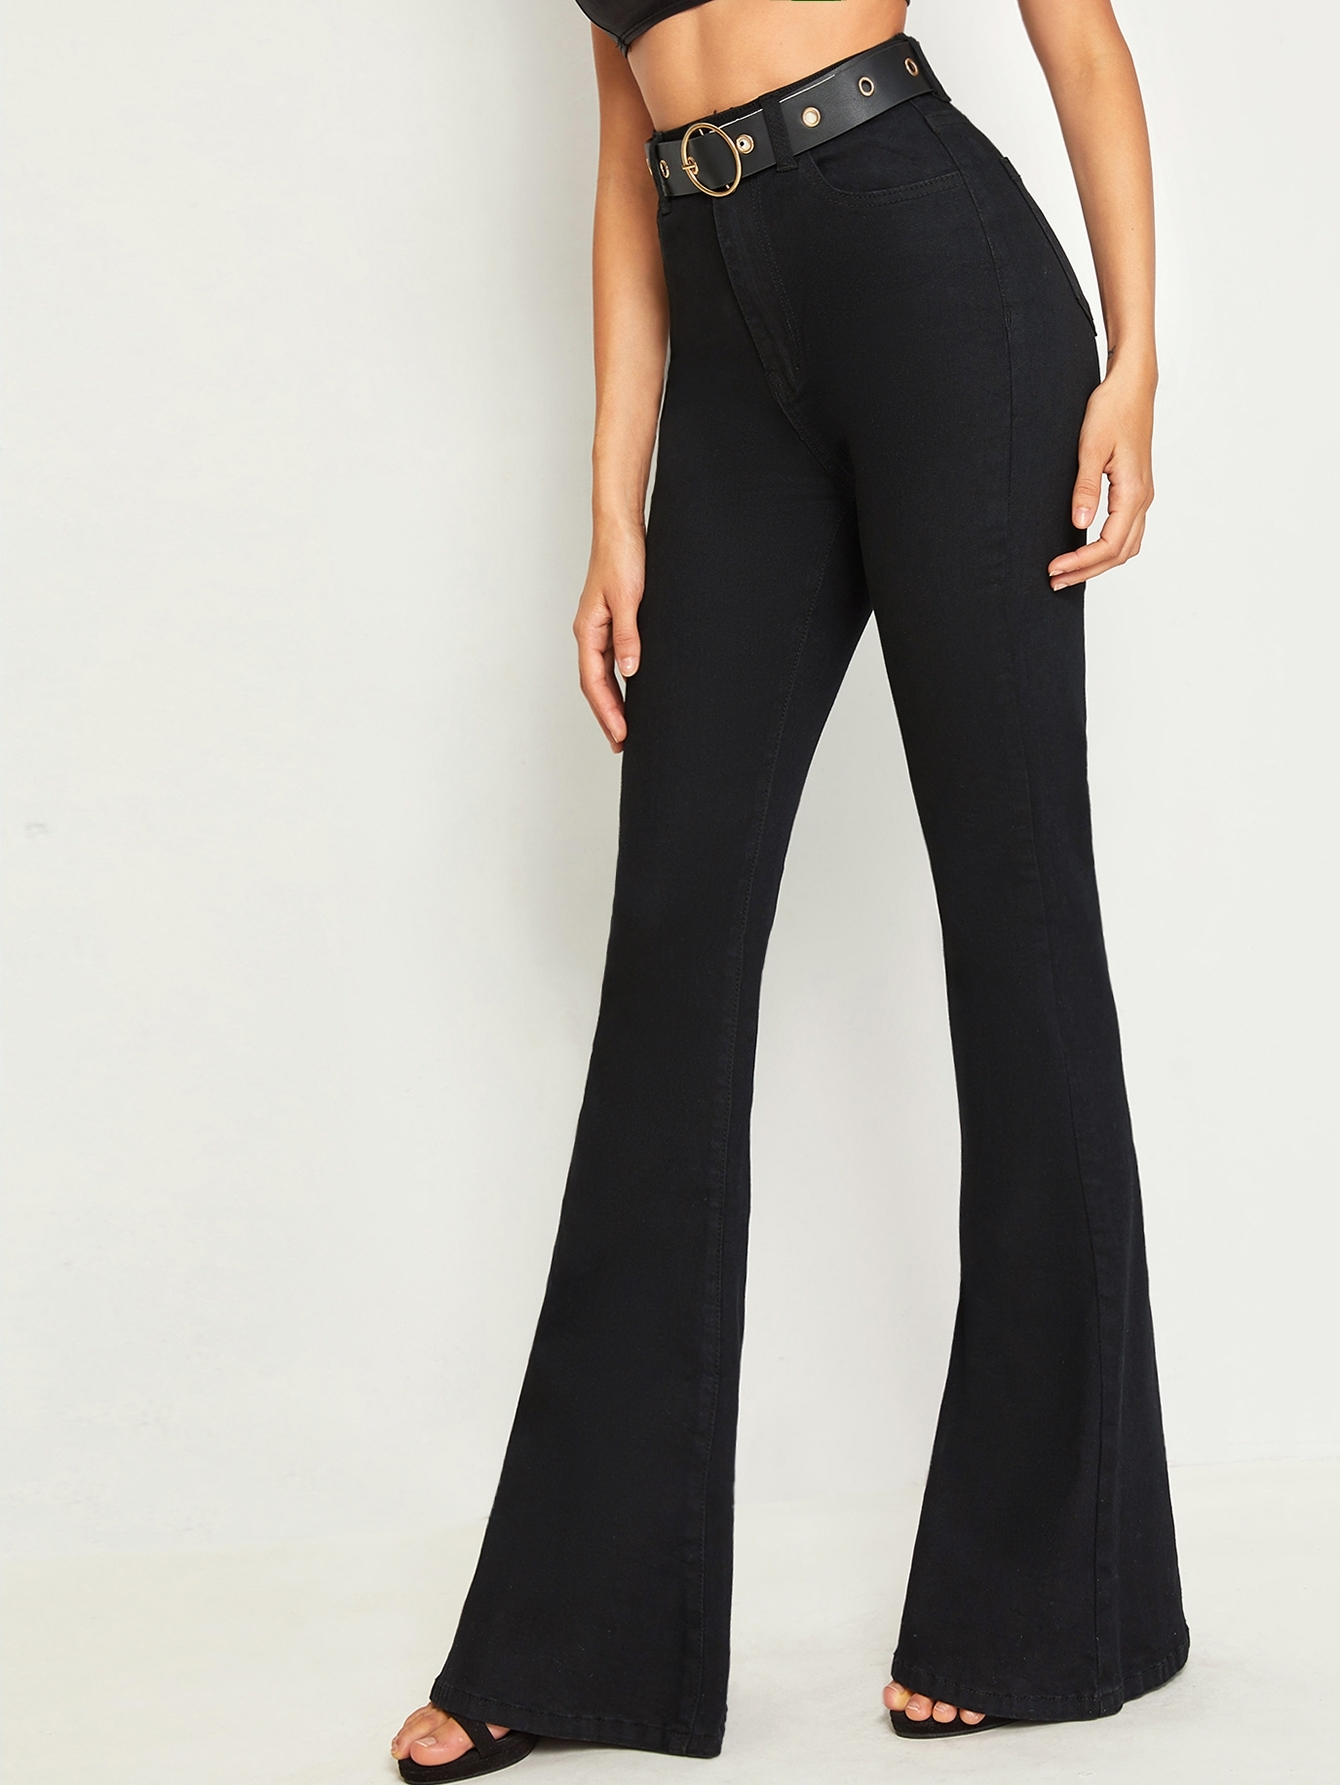 Self Buckle Belted Flare Leg Jeans